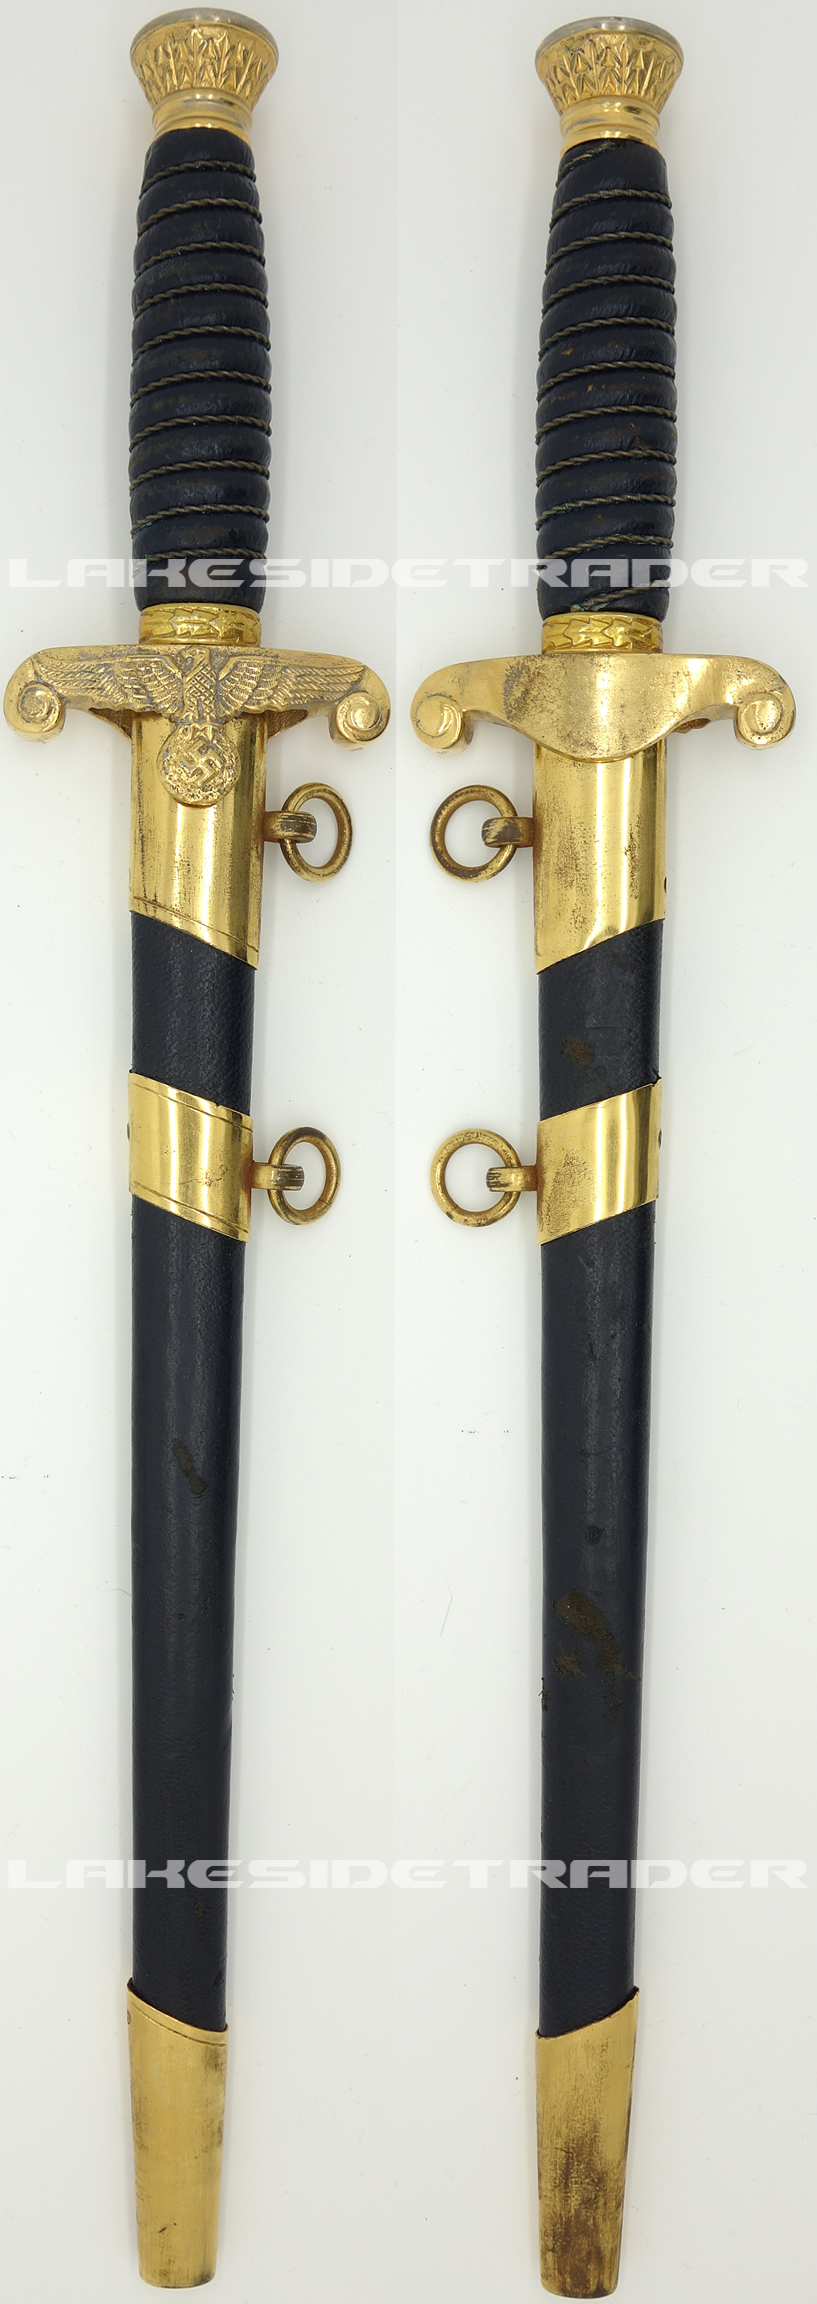 Water Customs Dagger by Hörster